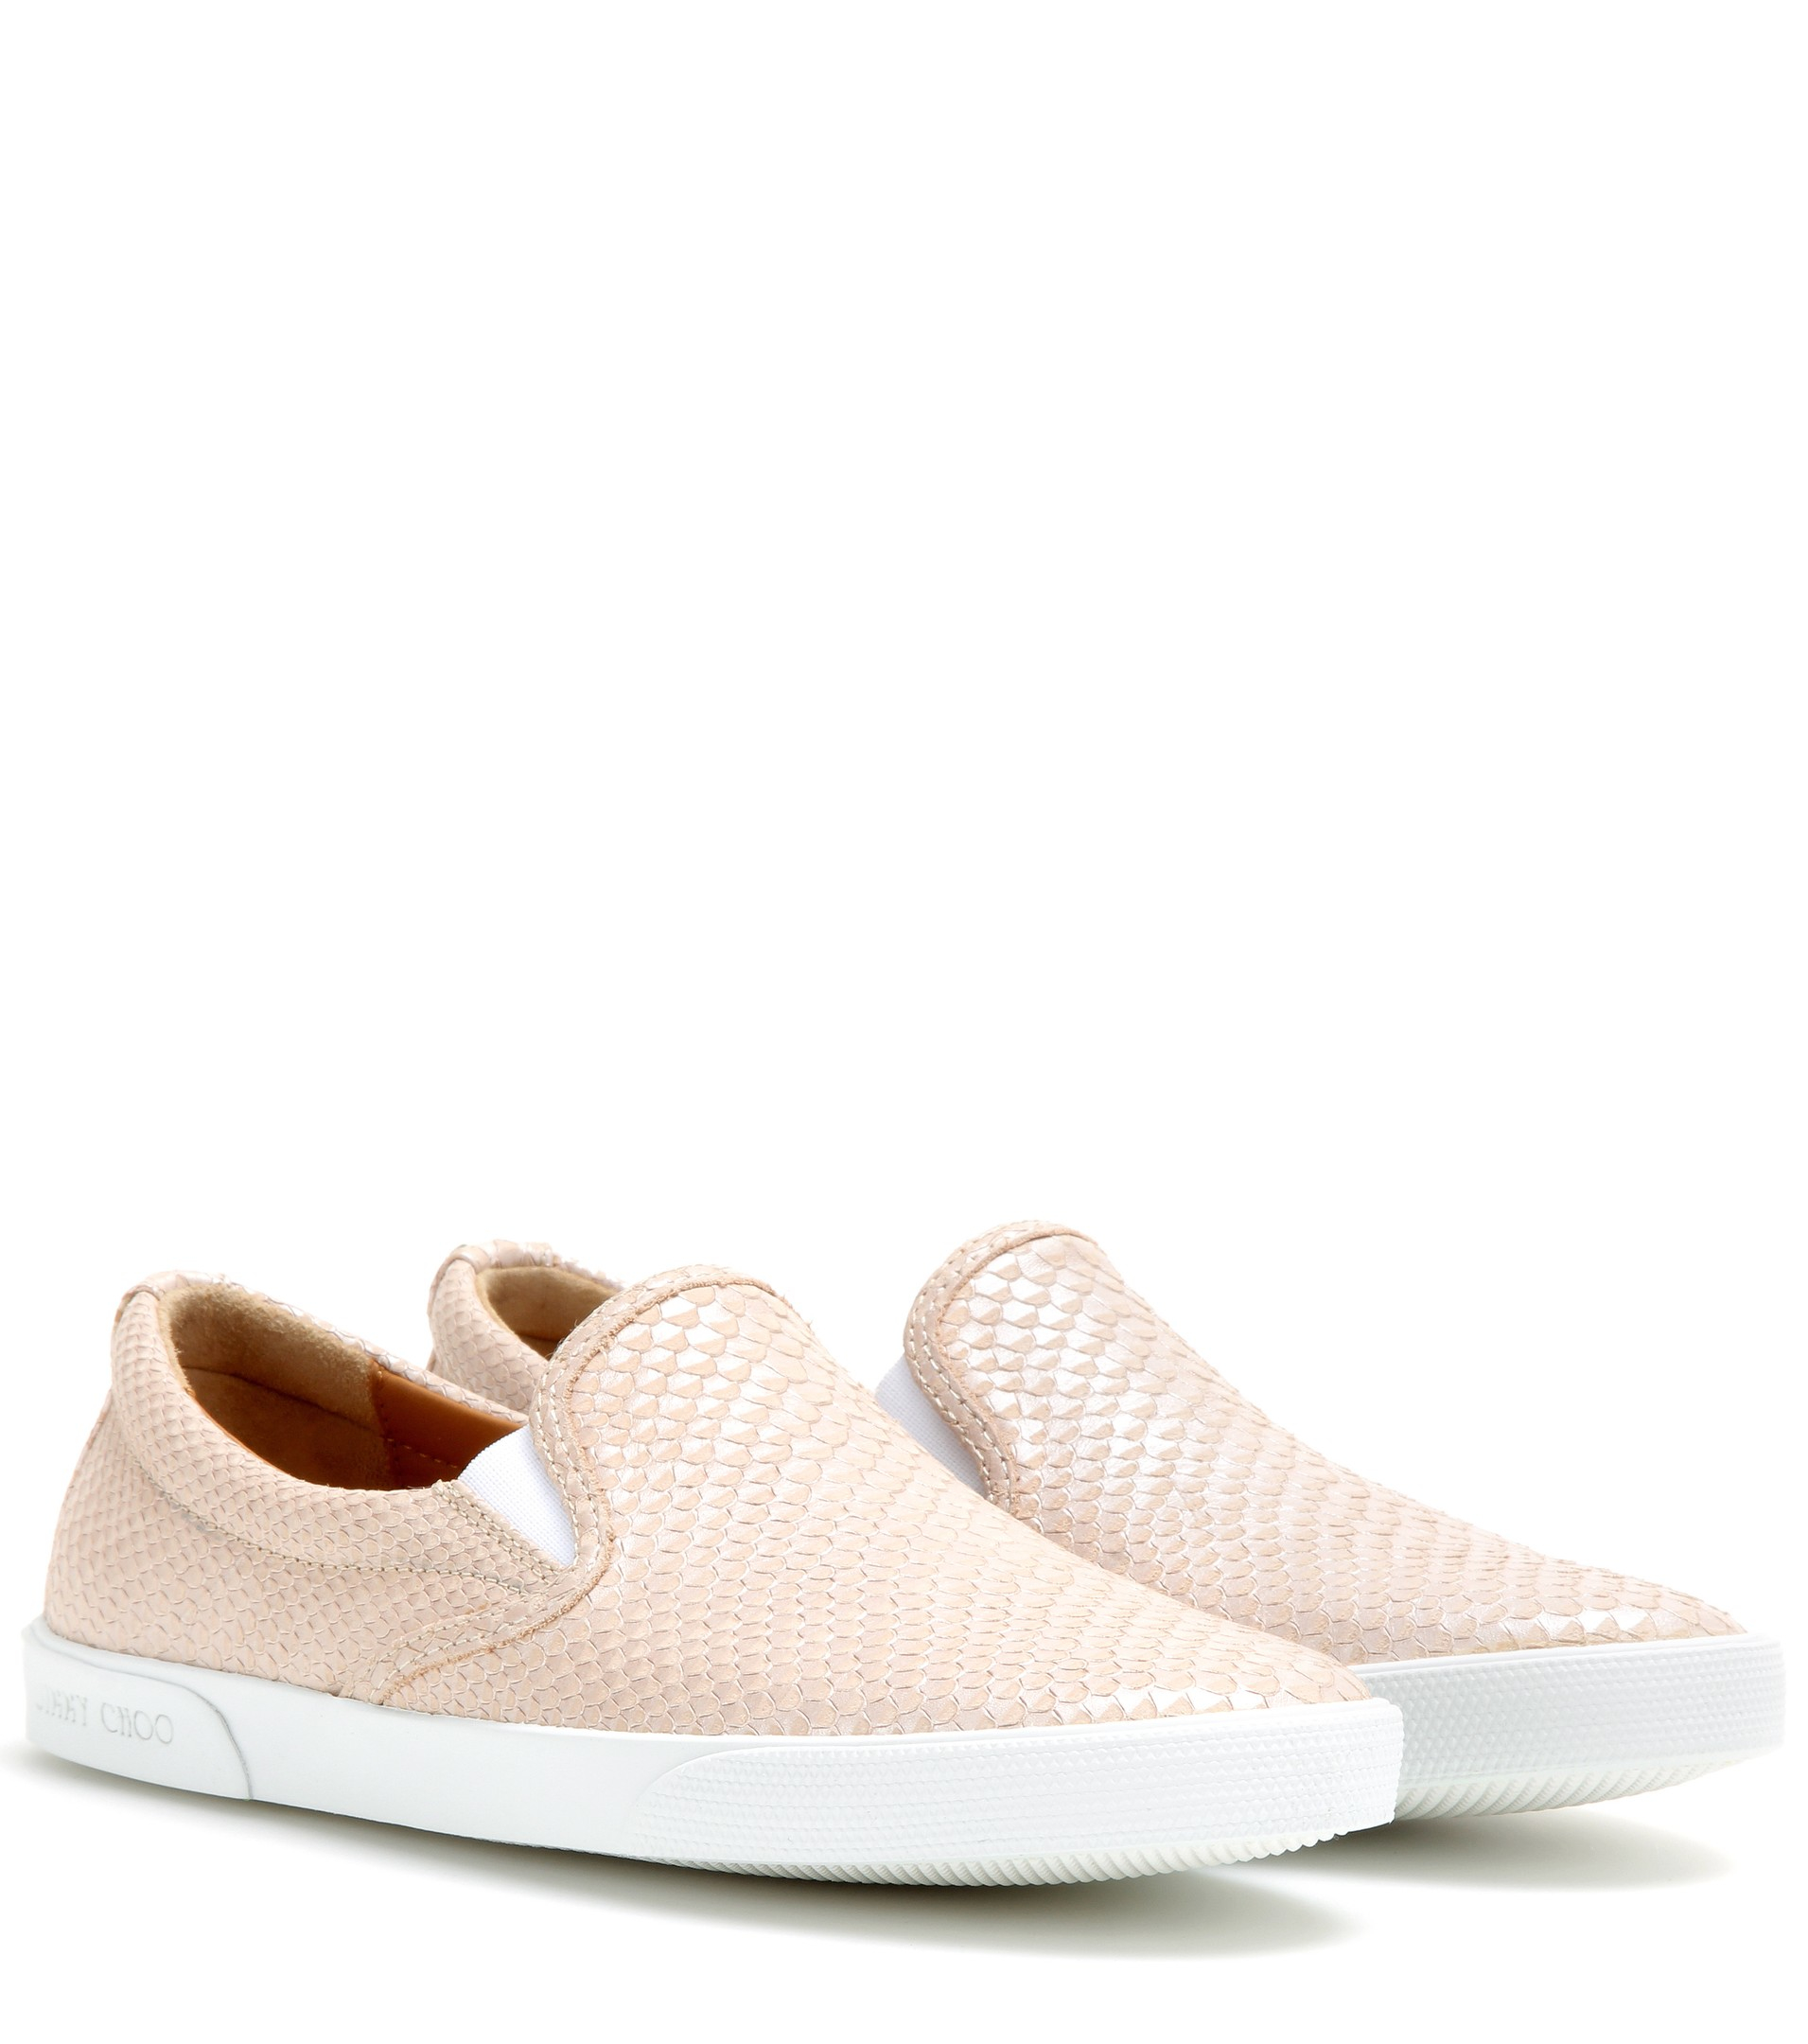 d55caf4cac04 ... shopping lyst jimmy choo demi embossed leather slip on sneakers in  natural a98f7 f2b96